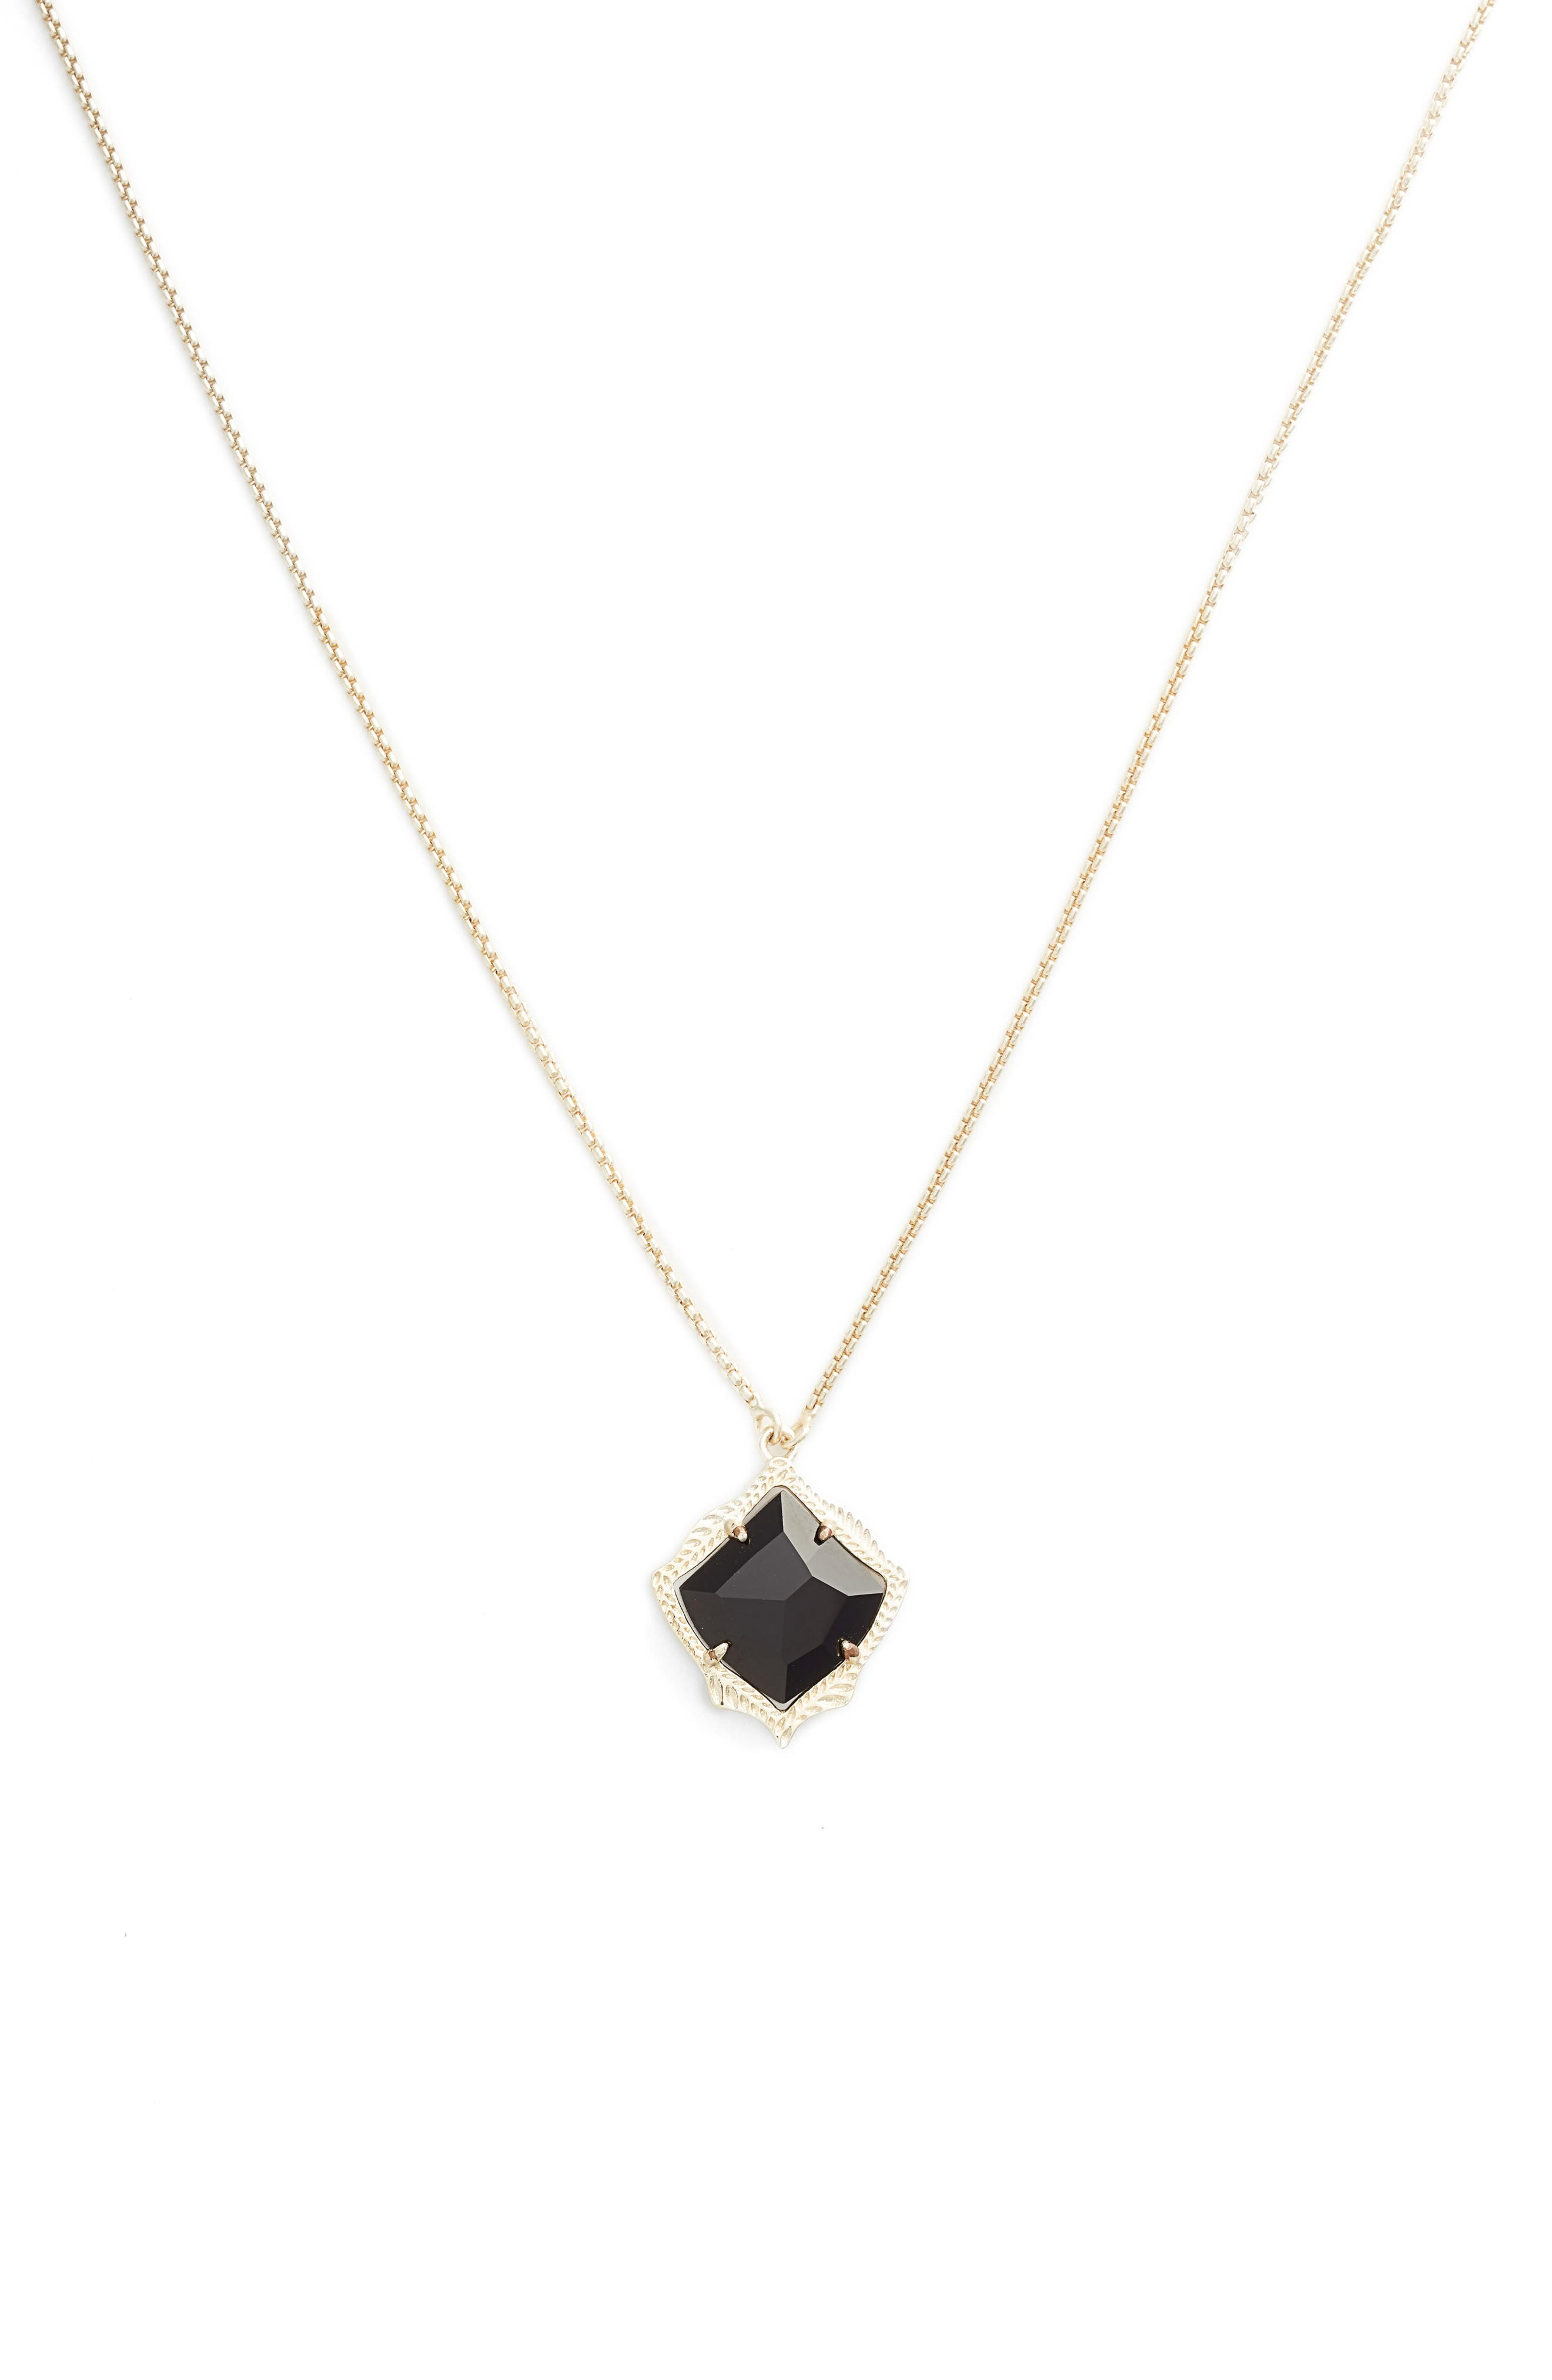 Kacey Adjustable Pendant Necklace,                         Main,                         color, BLACK OPAQUE GLASS/ GOLD